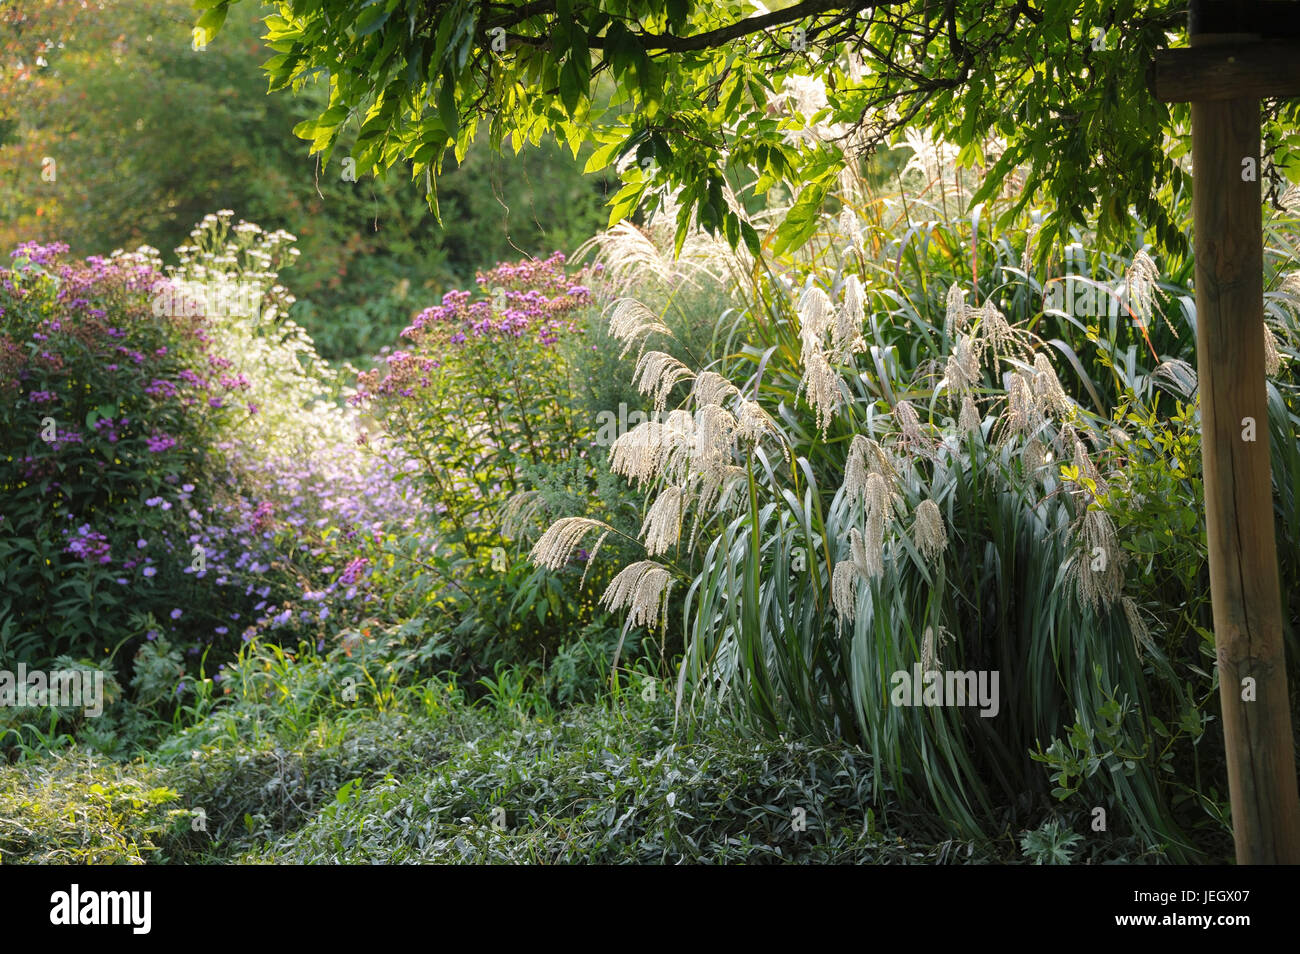 Zebra Chinaschilf Miscanthus Sinensis Zebrinus Garten U Chinaschilf Stock Photos Chinaschilf Stock Images Alamy